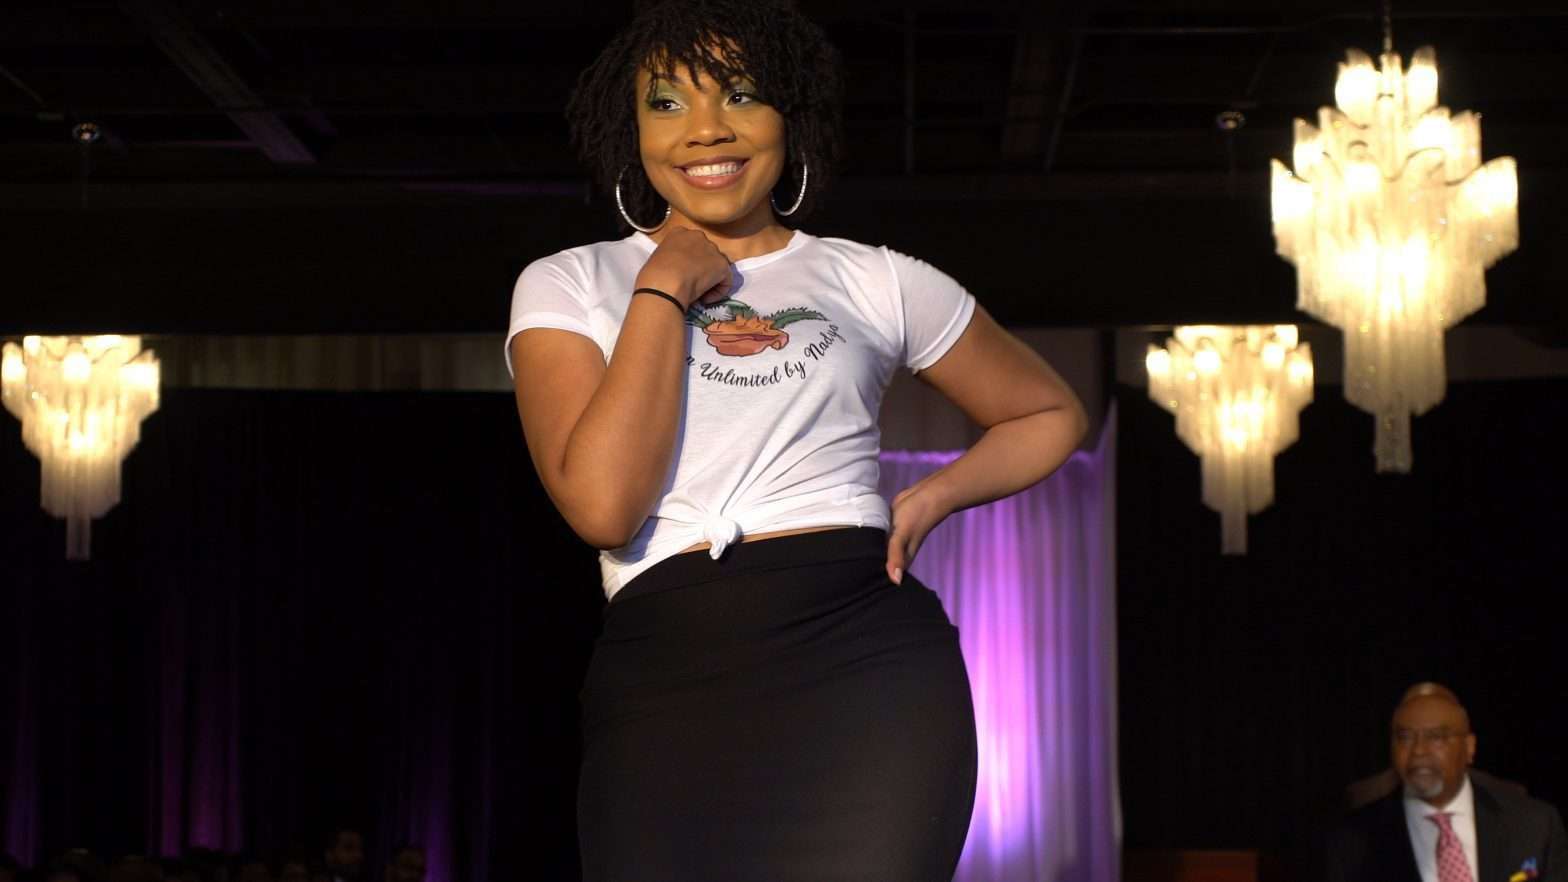 Coach Chi Anderson walks the runway to help raise funds to curb gun violence in St. Louis.